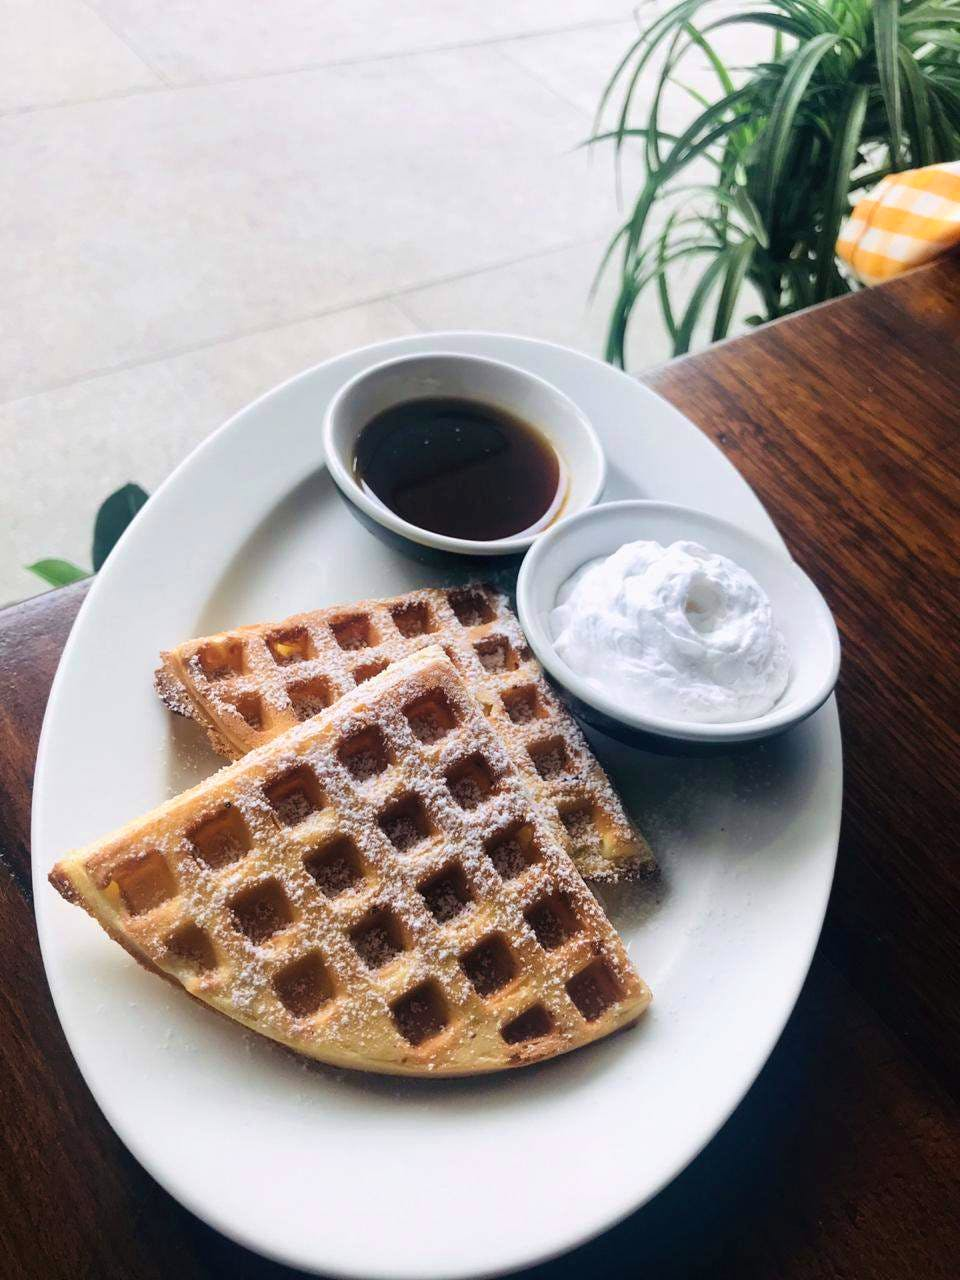 Dish,Food,Waffle,Breakfast,Meal,Belgian waffle,Cuisine,Wafer,Ingredient,Brunch